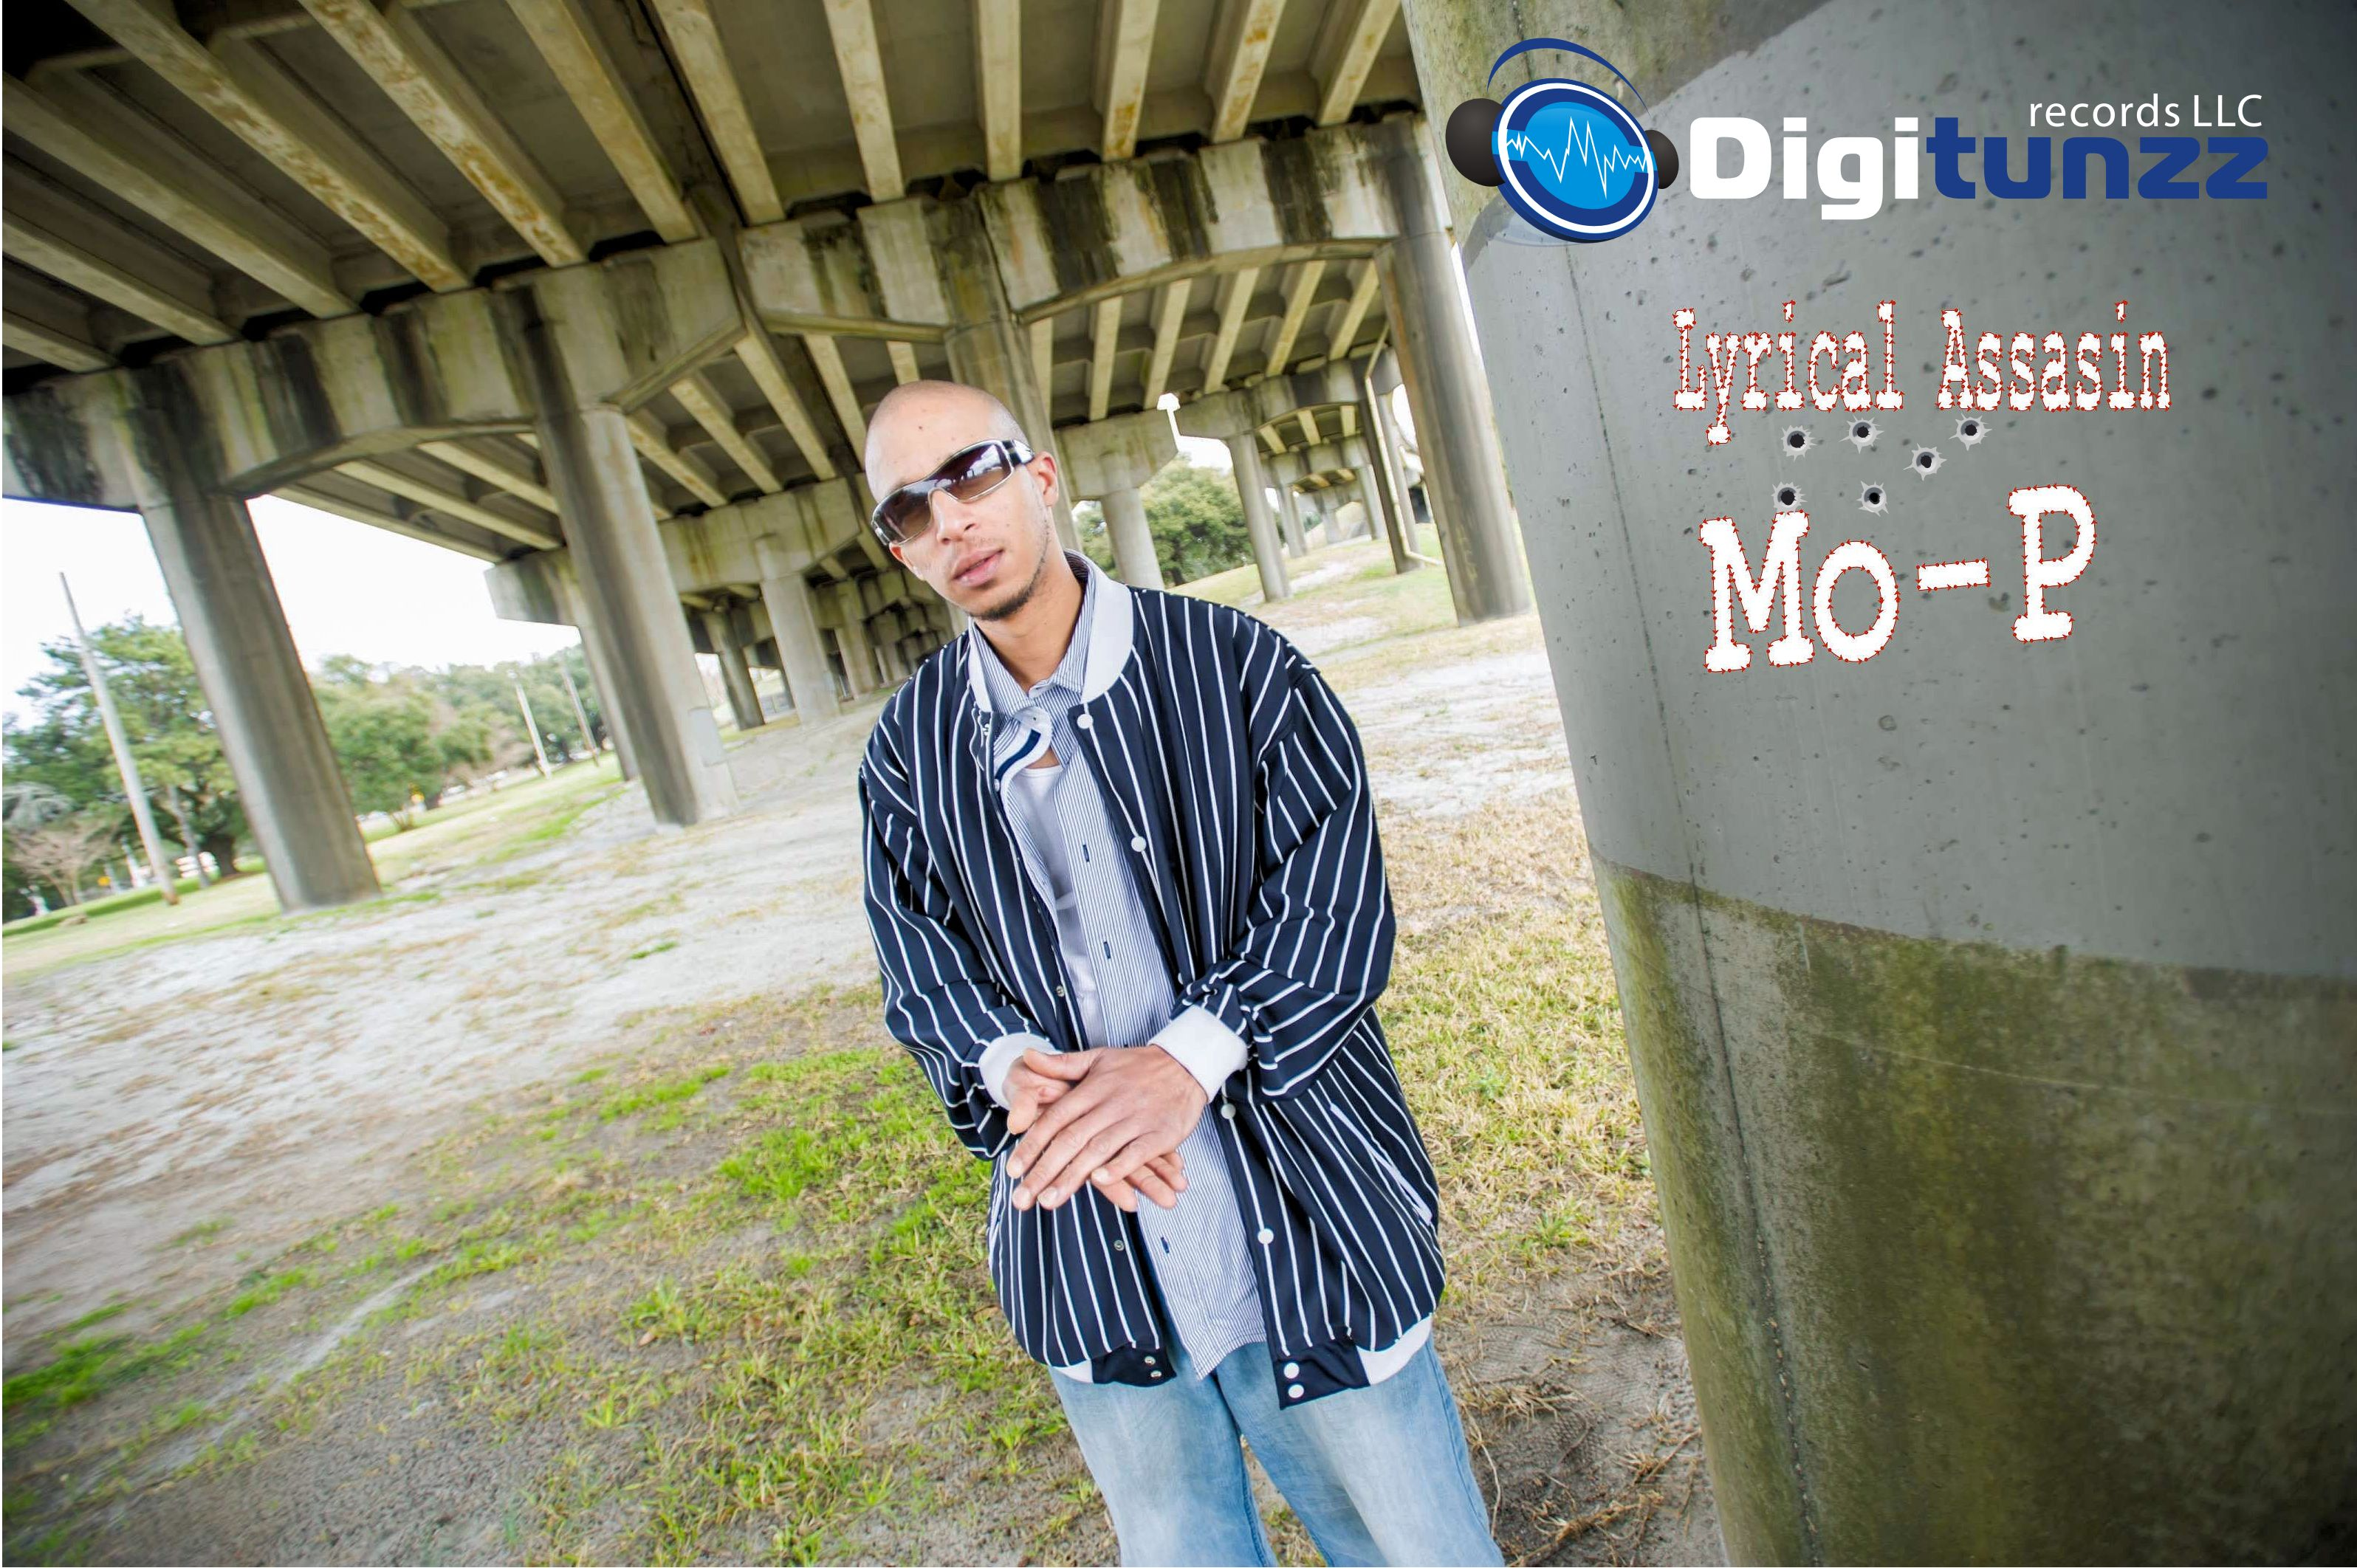 Mo-P we call him the lyrical assassin because that is exactly what he is and does his flow mixed with speed and  accuracy is second to none one of the nicest guys i know and an accomplished piano player from NC Born and Breed star.